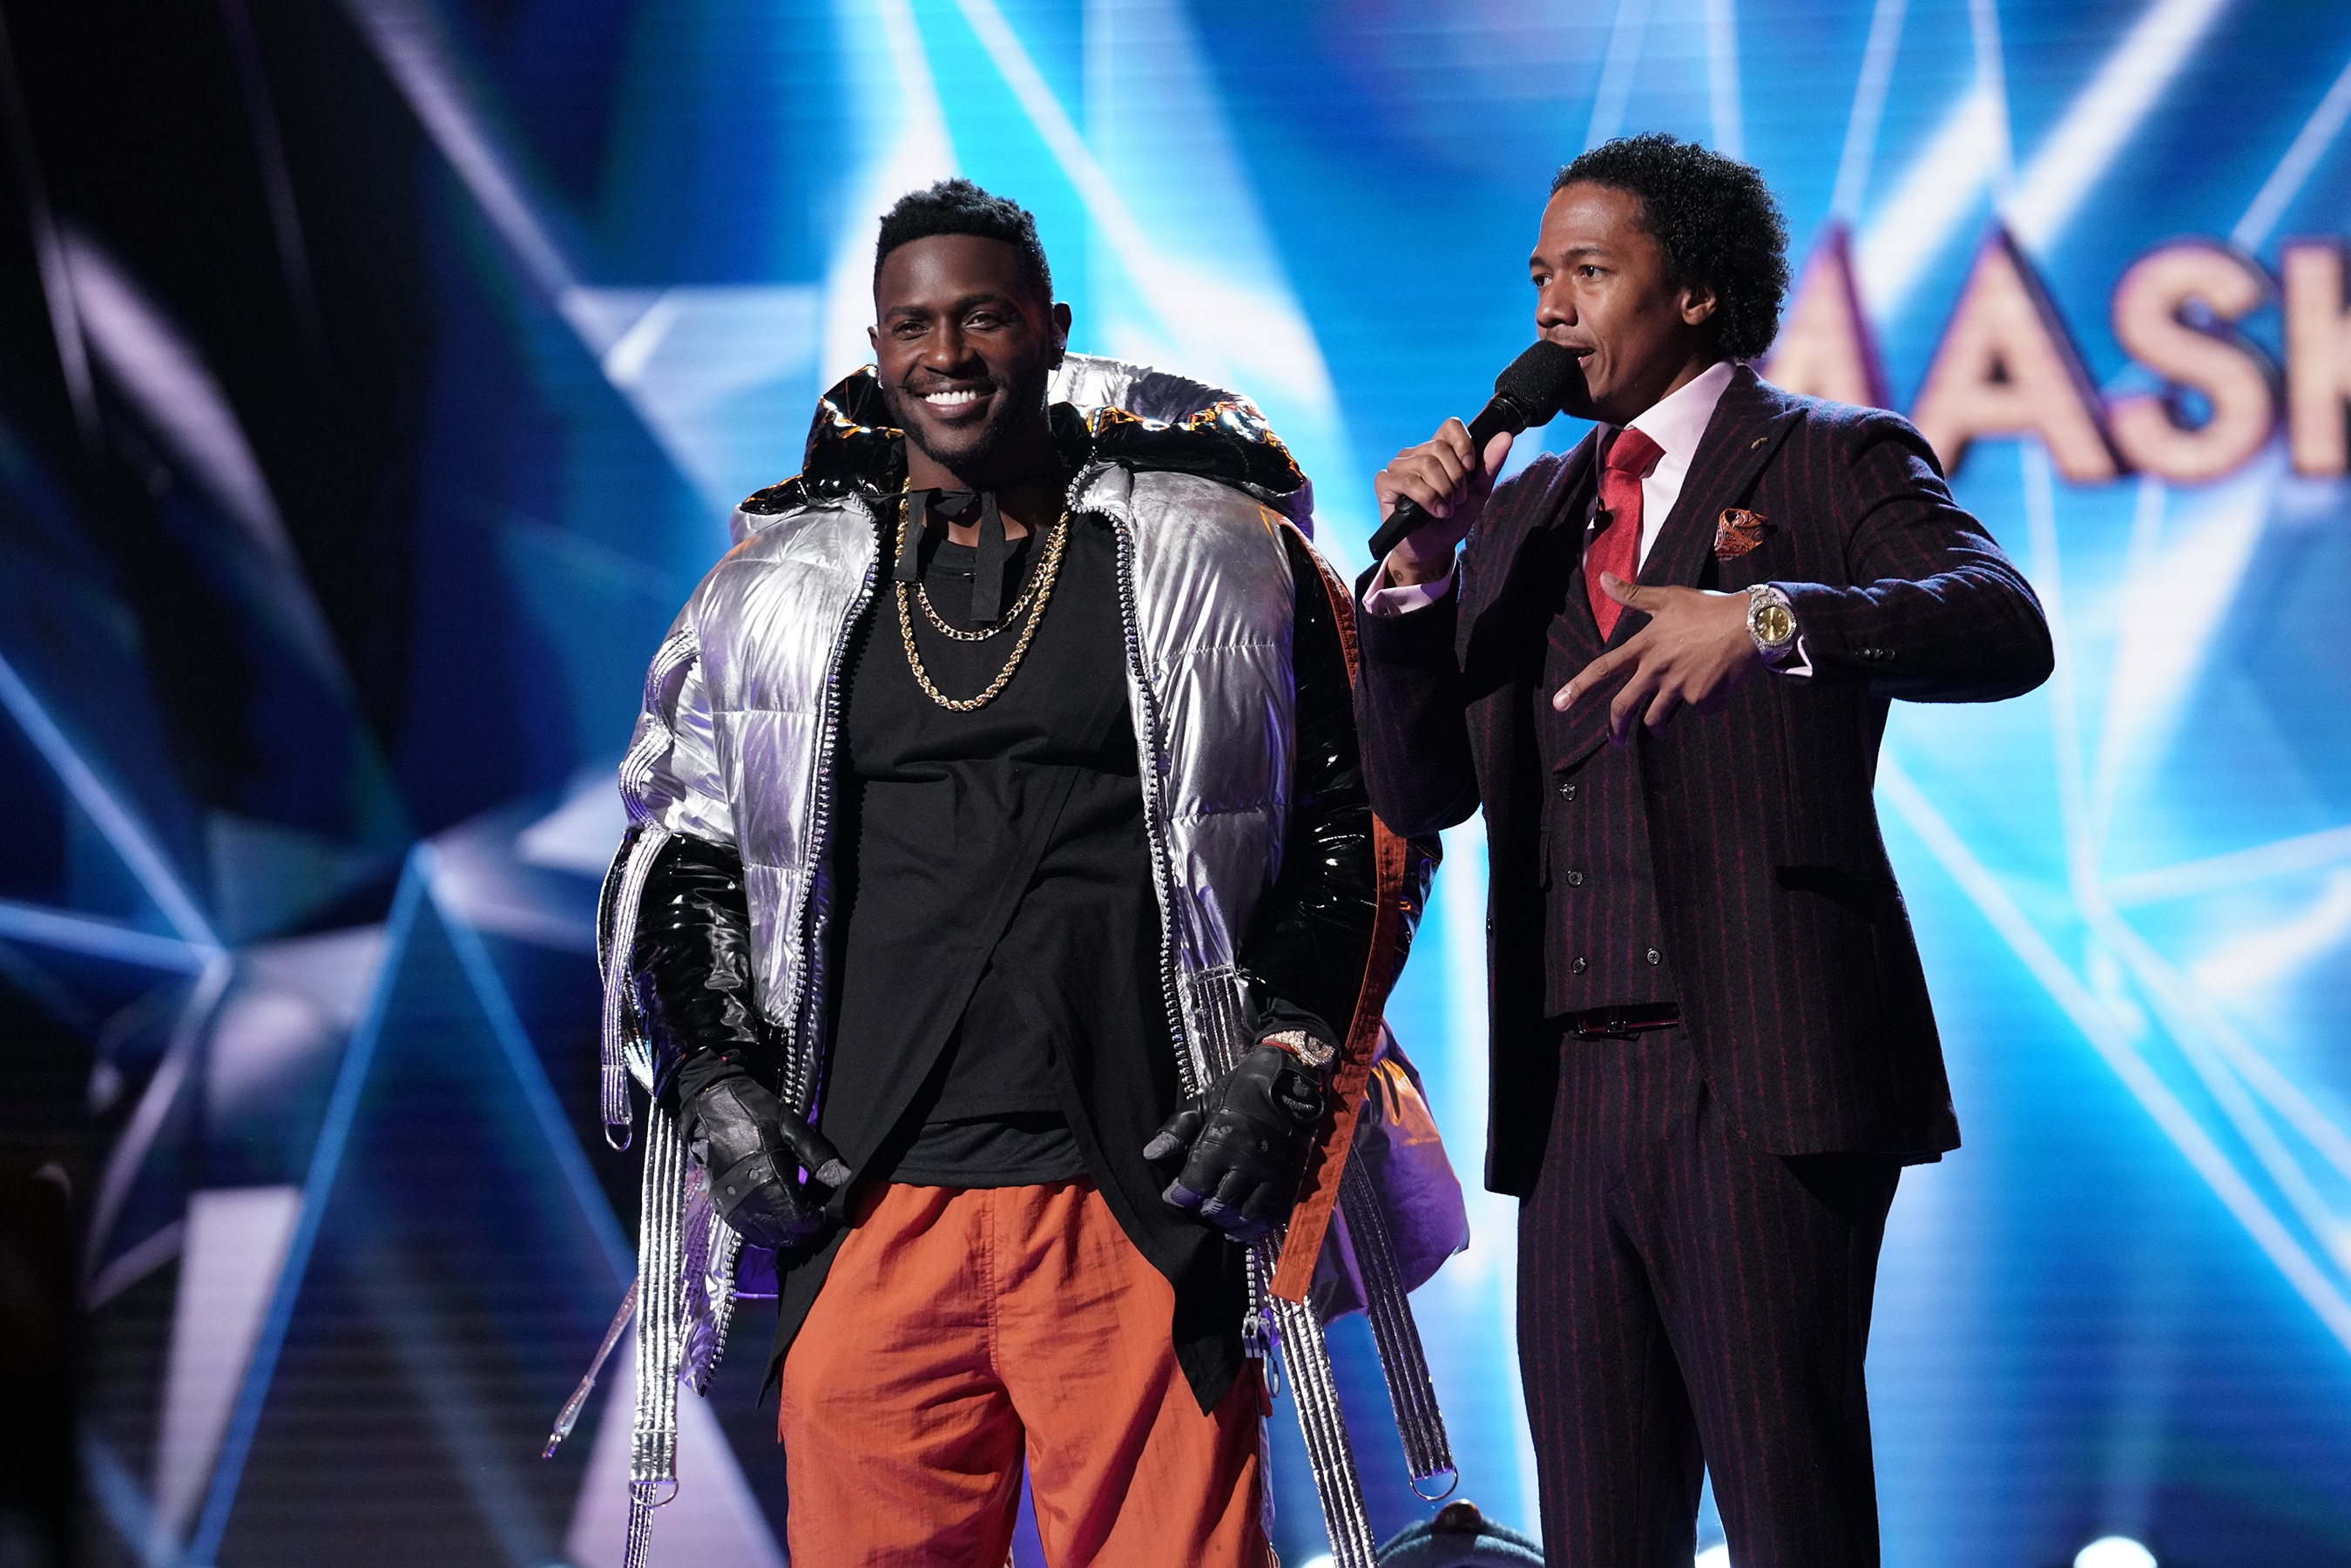 NFL superstar wide receiver Antonio Brown with host Nick Cannon.